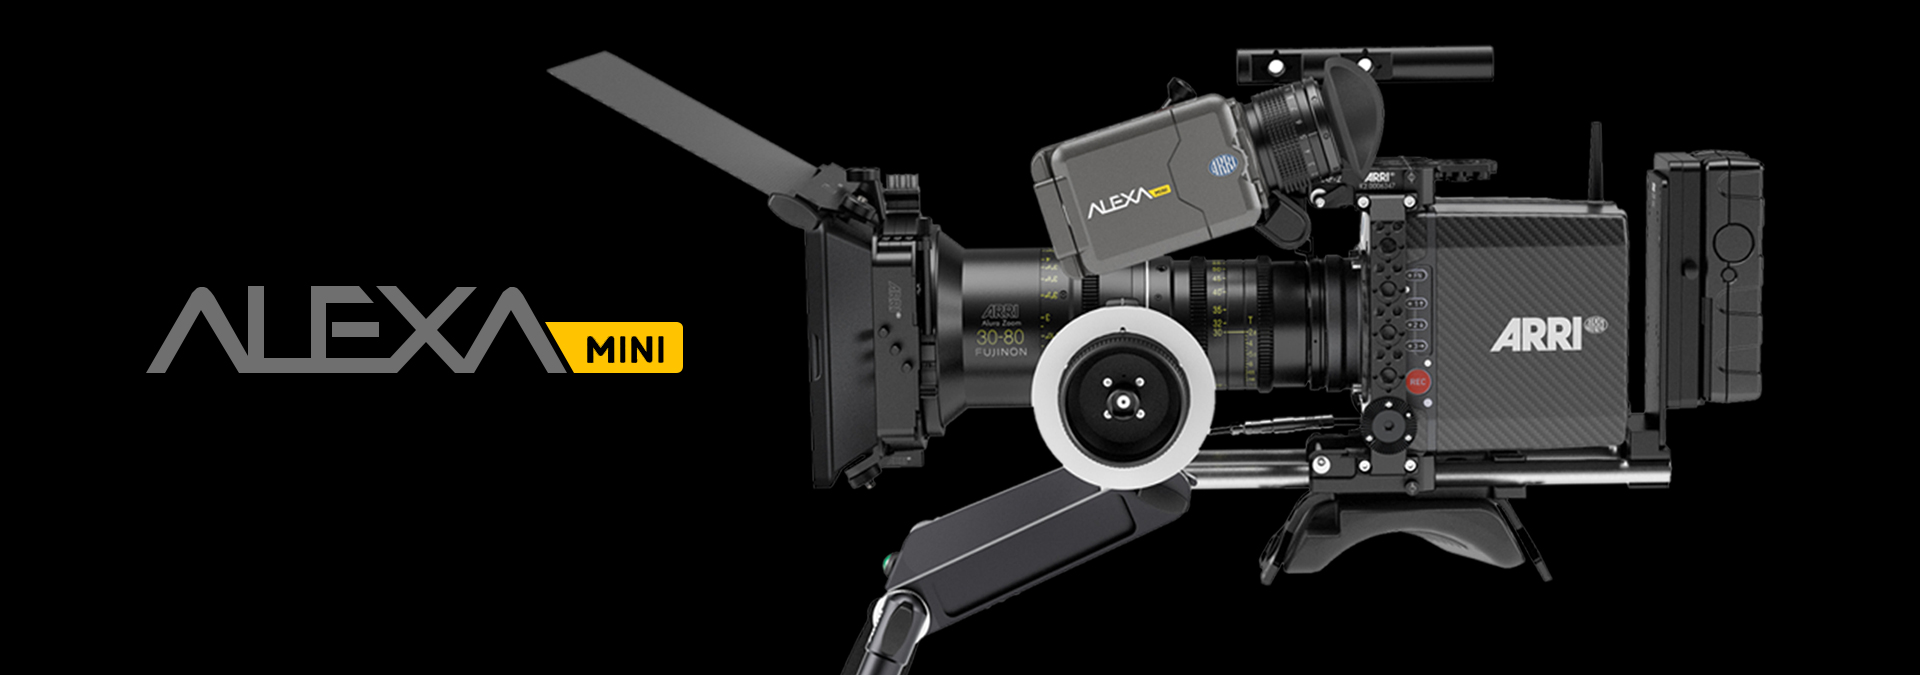 ARRI Alexa MINI - Już do wynajmu w Lightcraft